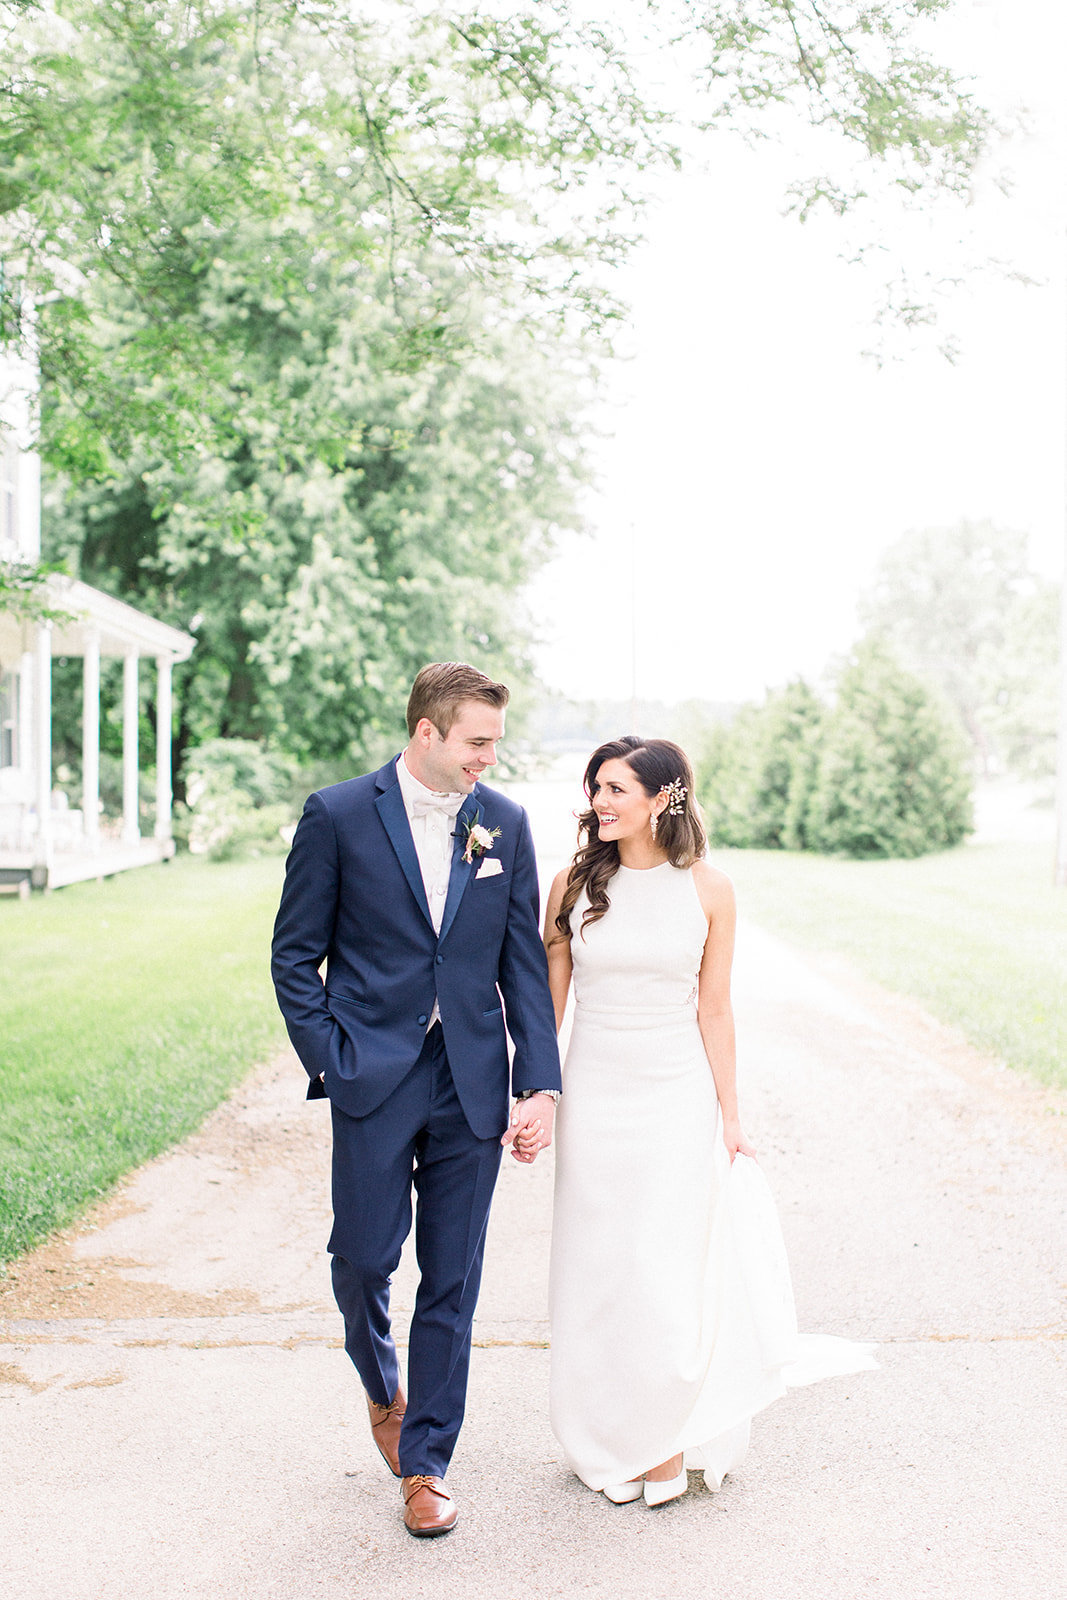 Michelle+Jimmy-jennplumlee-photo-